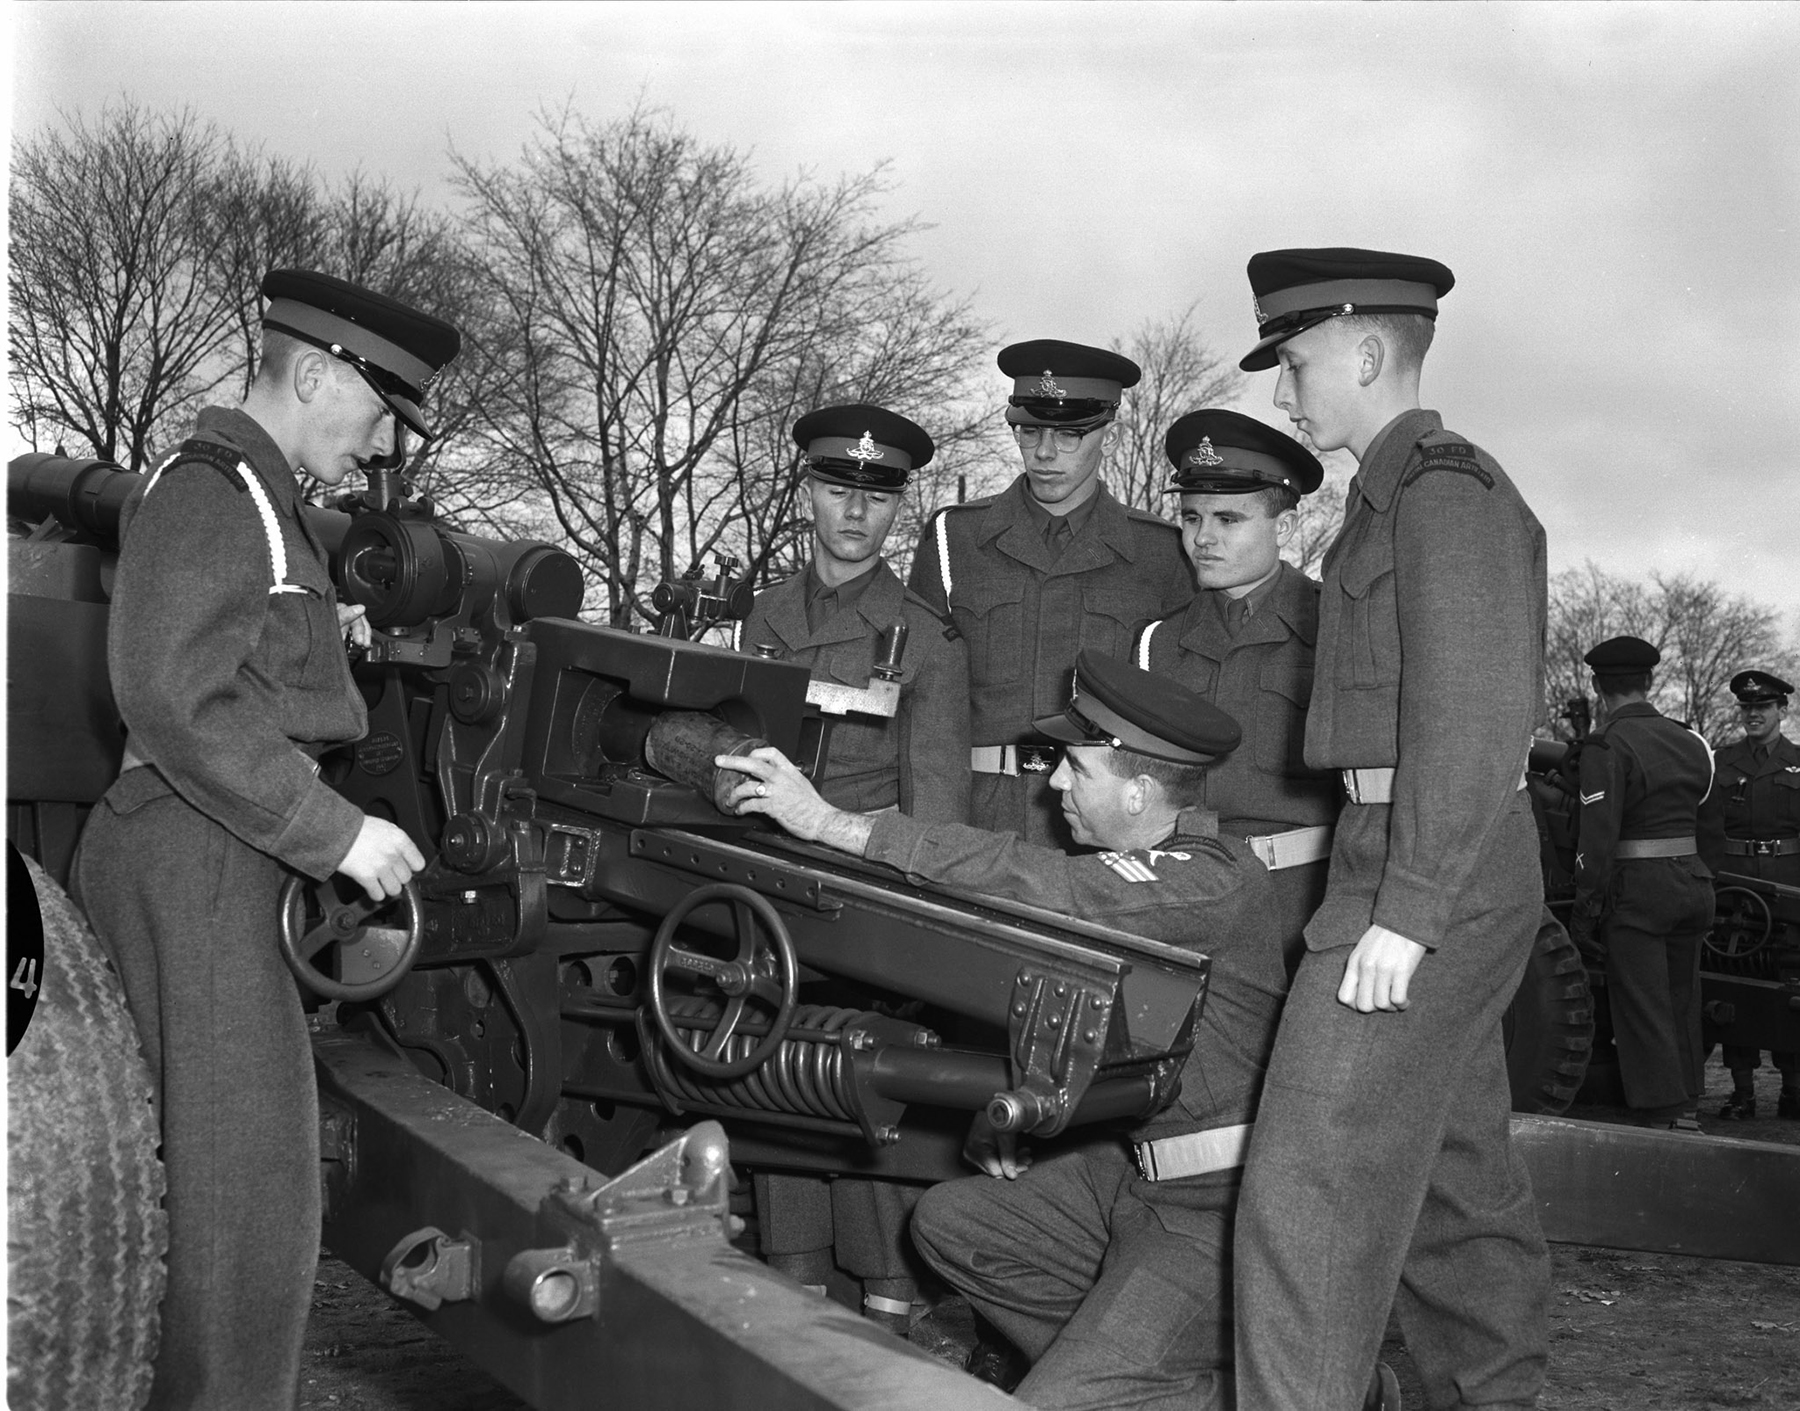 On November 7, 1960, practice makes perfect, even for ceremonial gun crews warming up their 105 mm howitzers for Remembrance Day. PHOTO: DND Archives, Z-9241-8